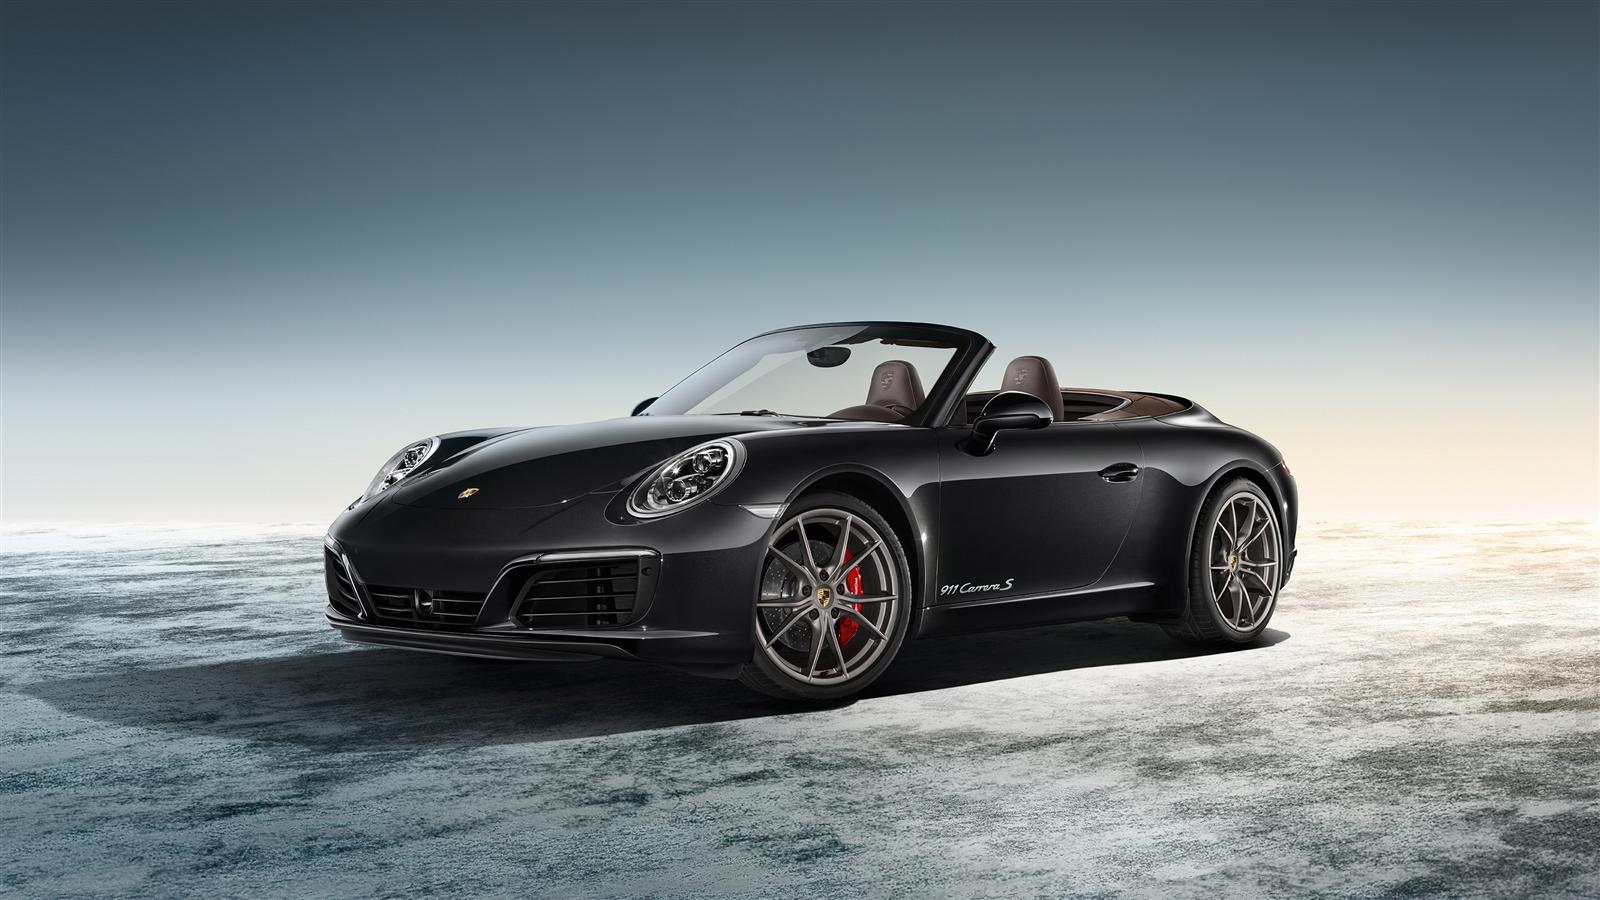 Exclusive 911 Carrera S Cabriolet